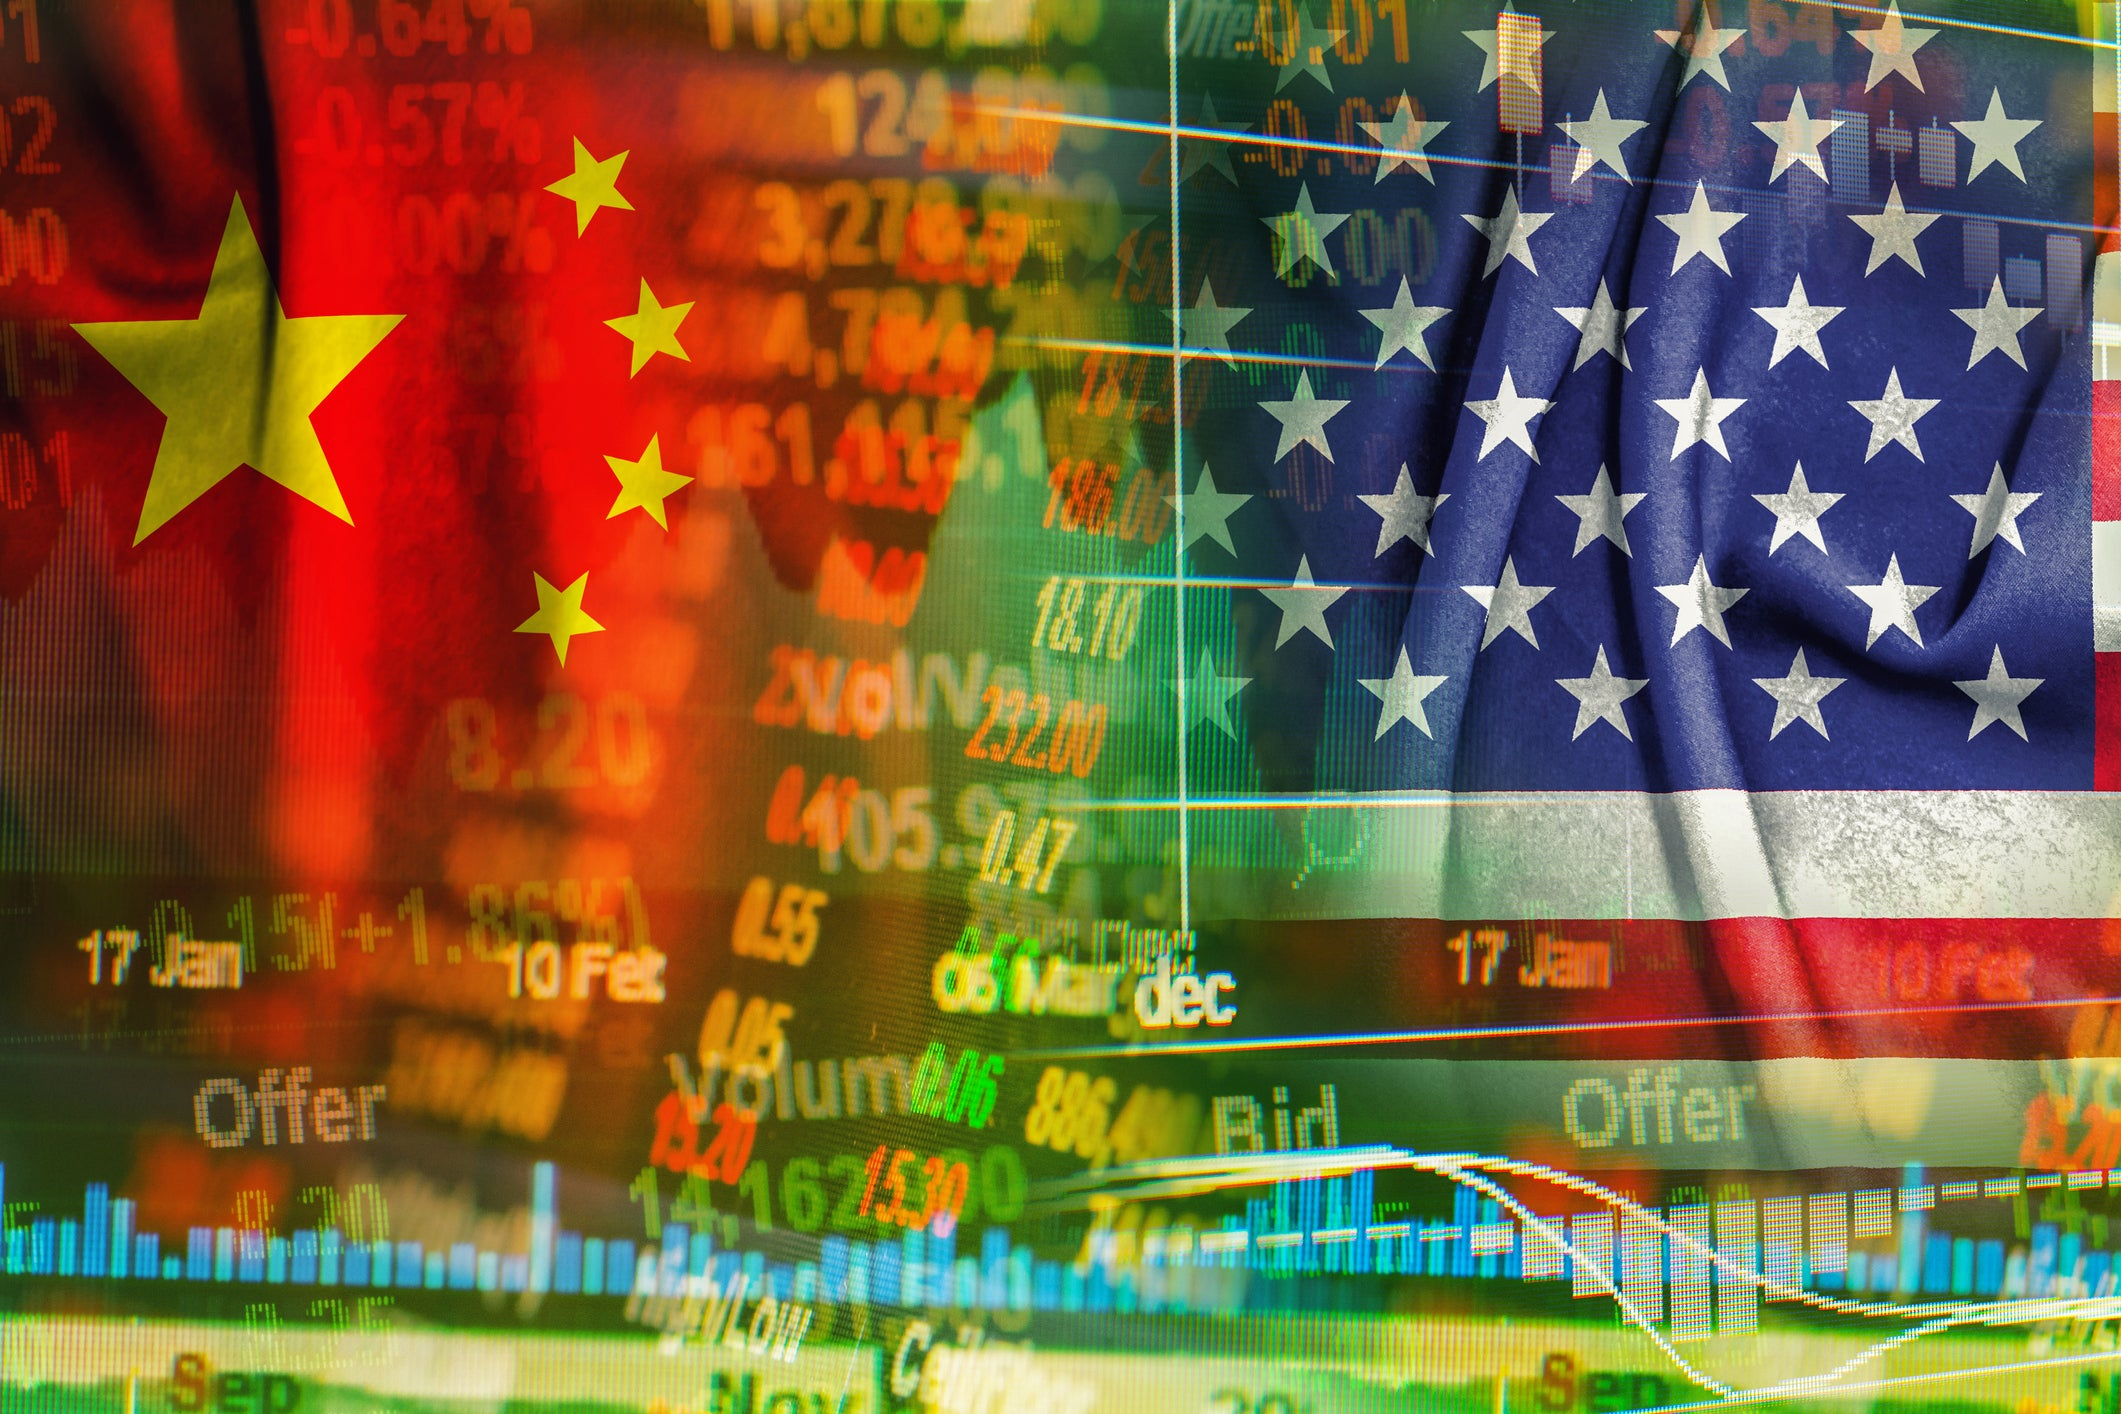 President Trump to Sign Bill That Could Kick Chinese Stocks Off U.S. Exchanges